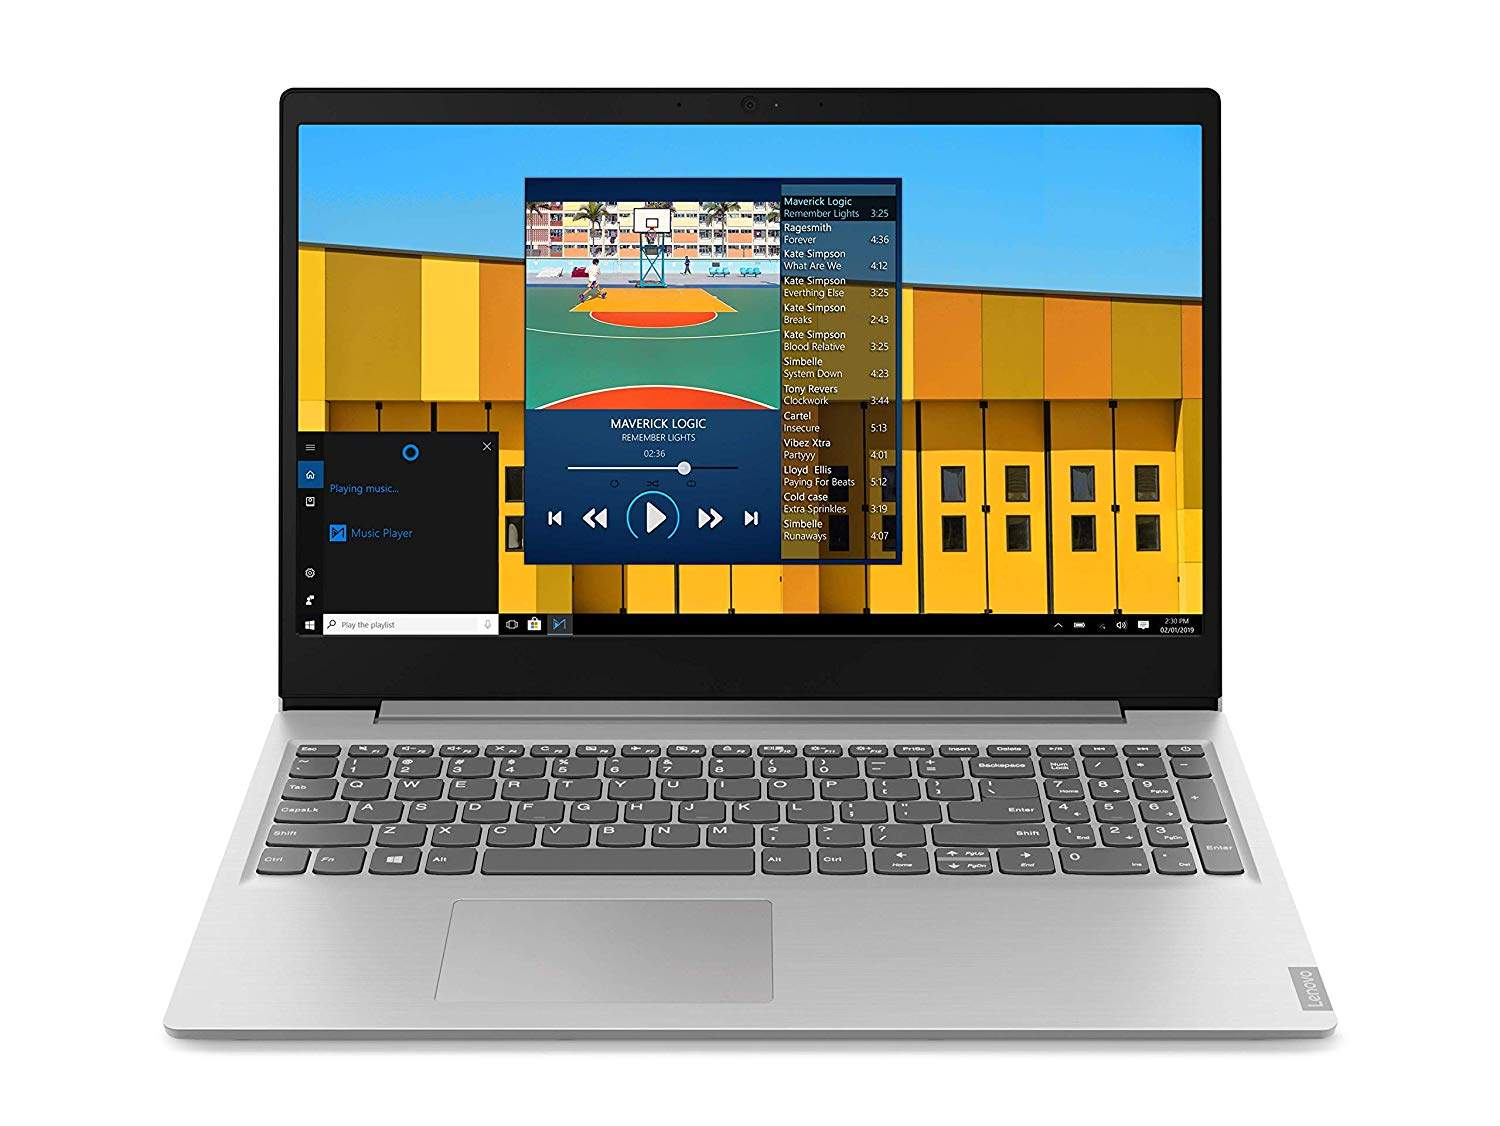 Lenovo Ideapad S145 AMD A9-9425 15.6- HD Thin And Light Laptop ( 4GB RAM / 1TB HDD / Windows 10 Home / Office Home And Student 2019 / Grey / 1.85Kg ), 81N3004EIN